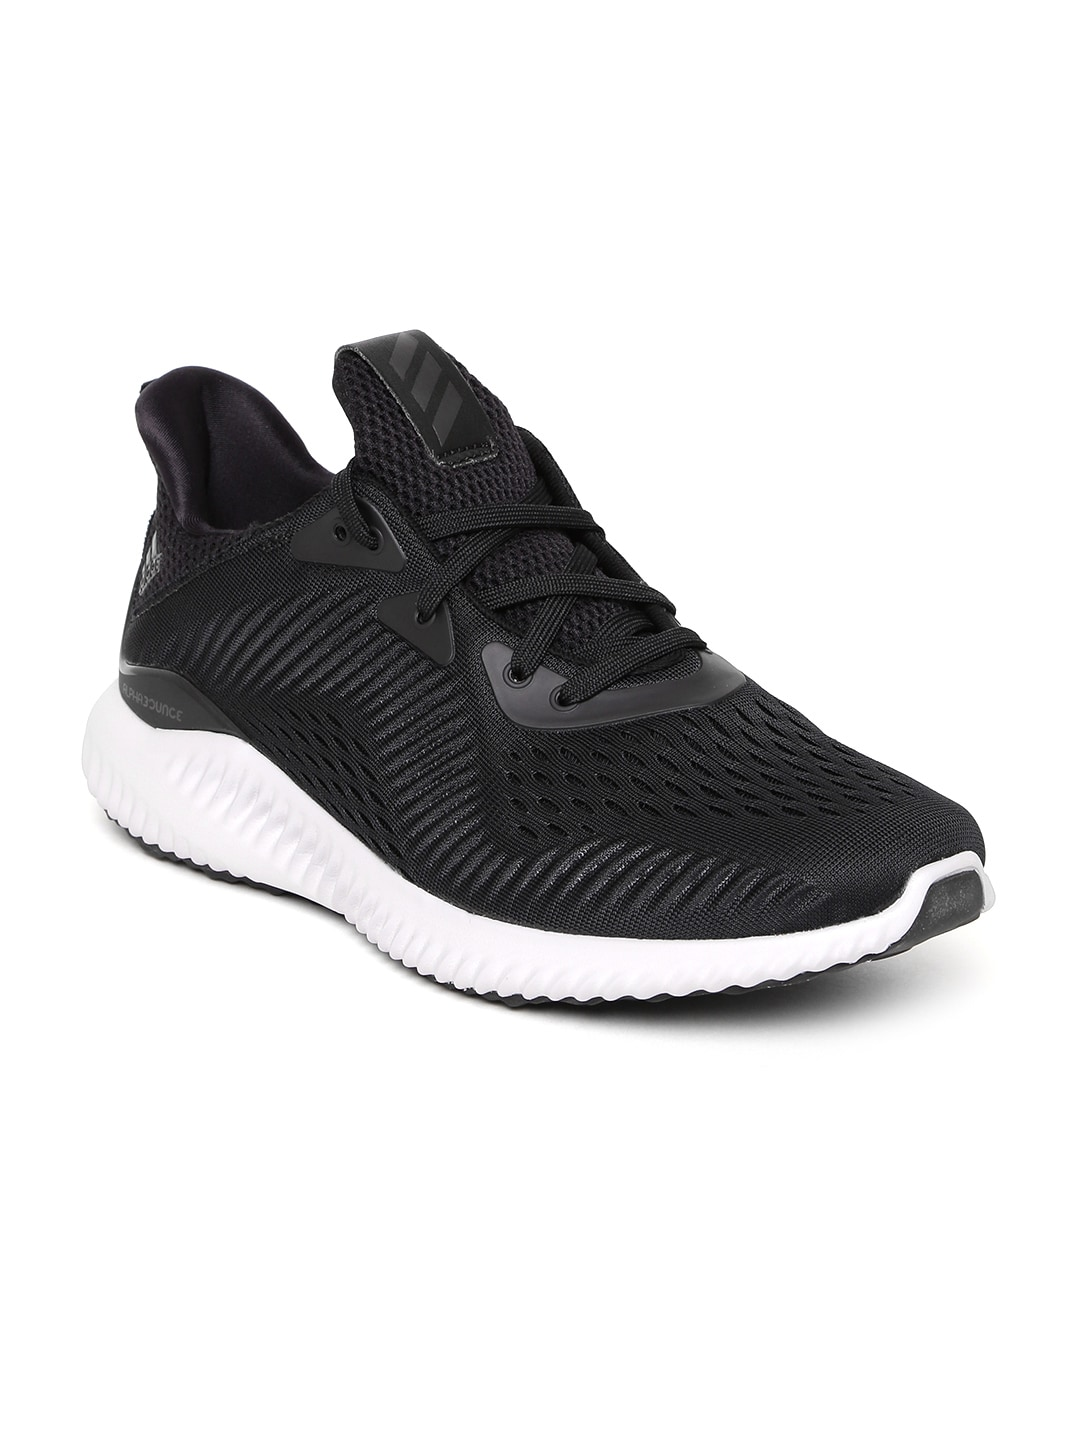 104403e9f1c Adidas New Arrivals - Buy Adidas New Arrivals Online in India